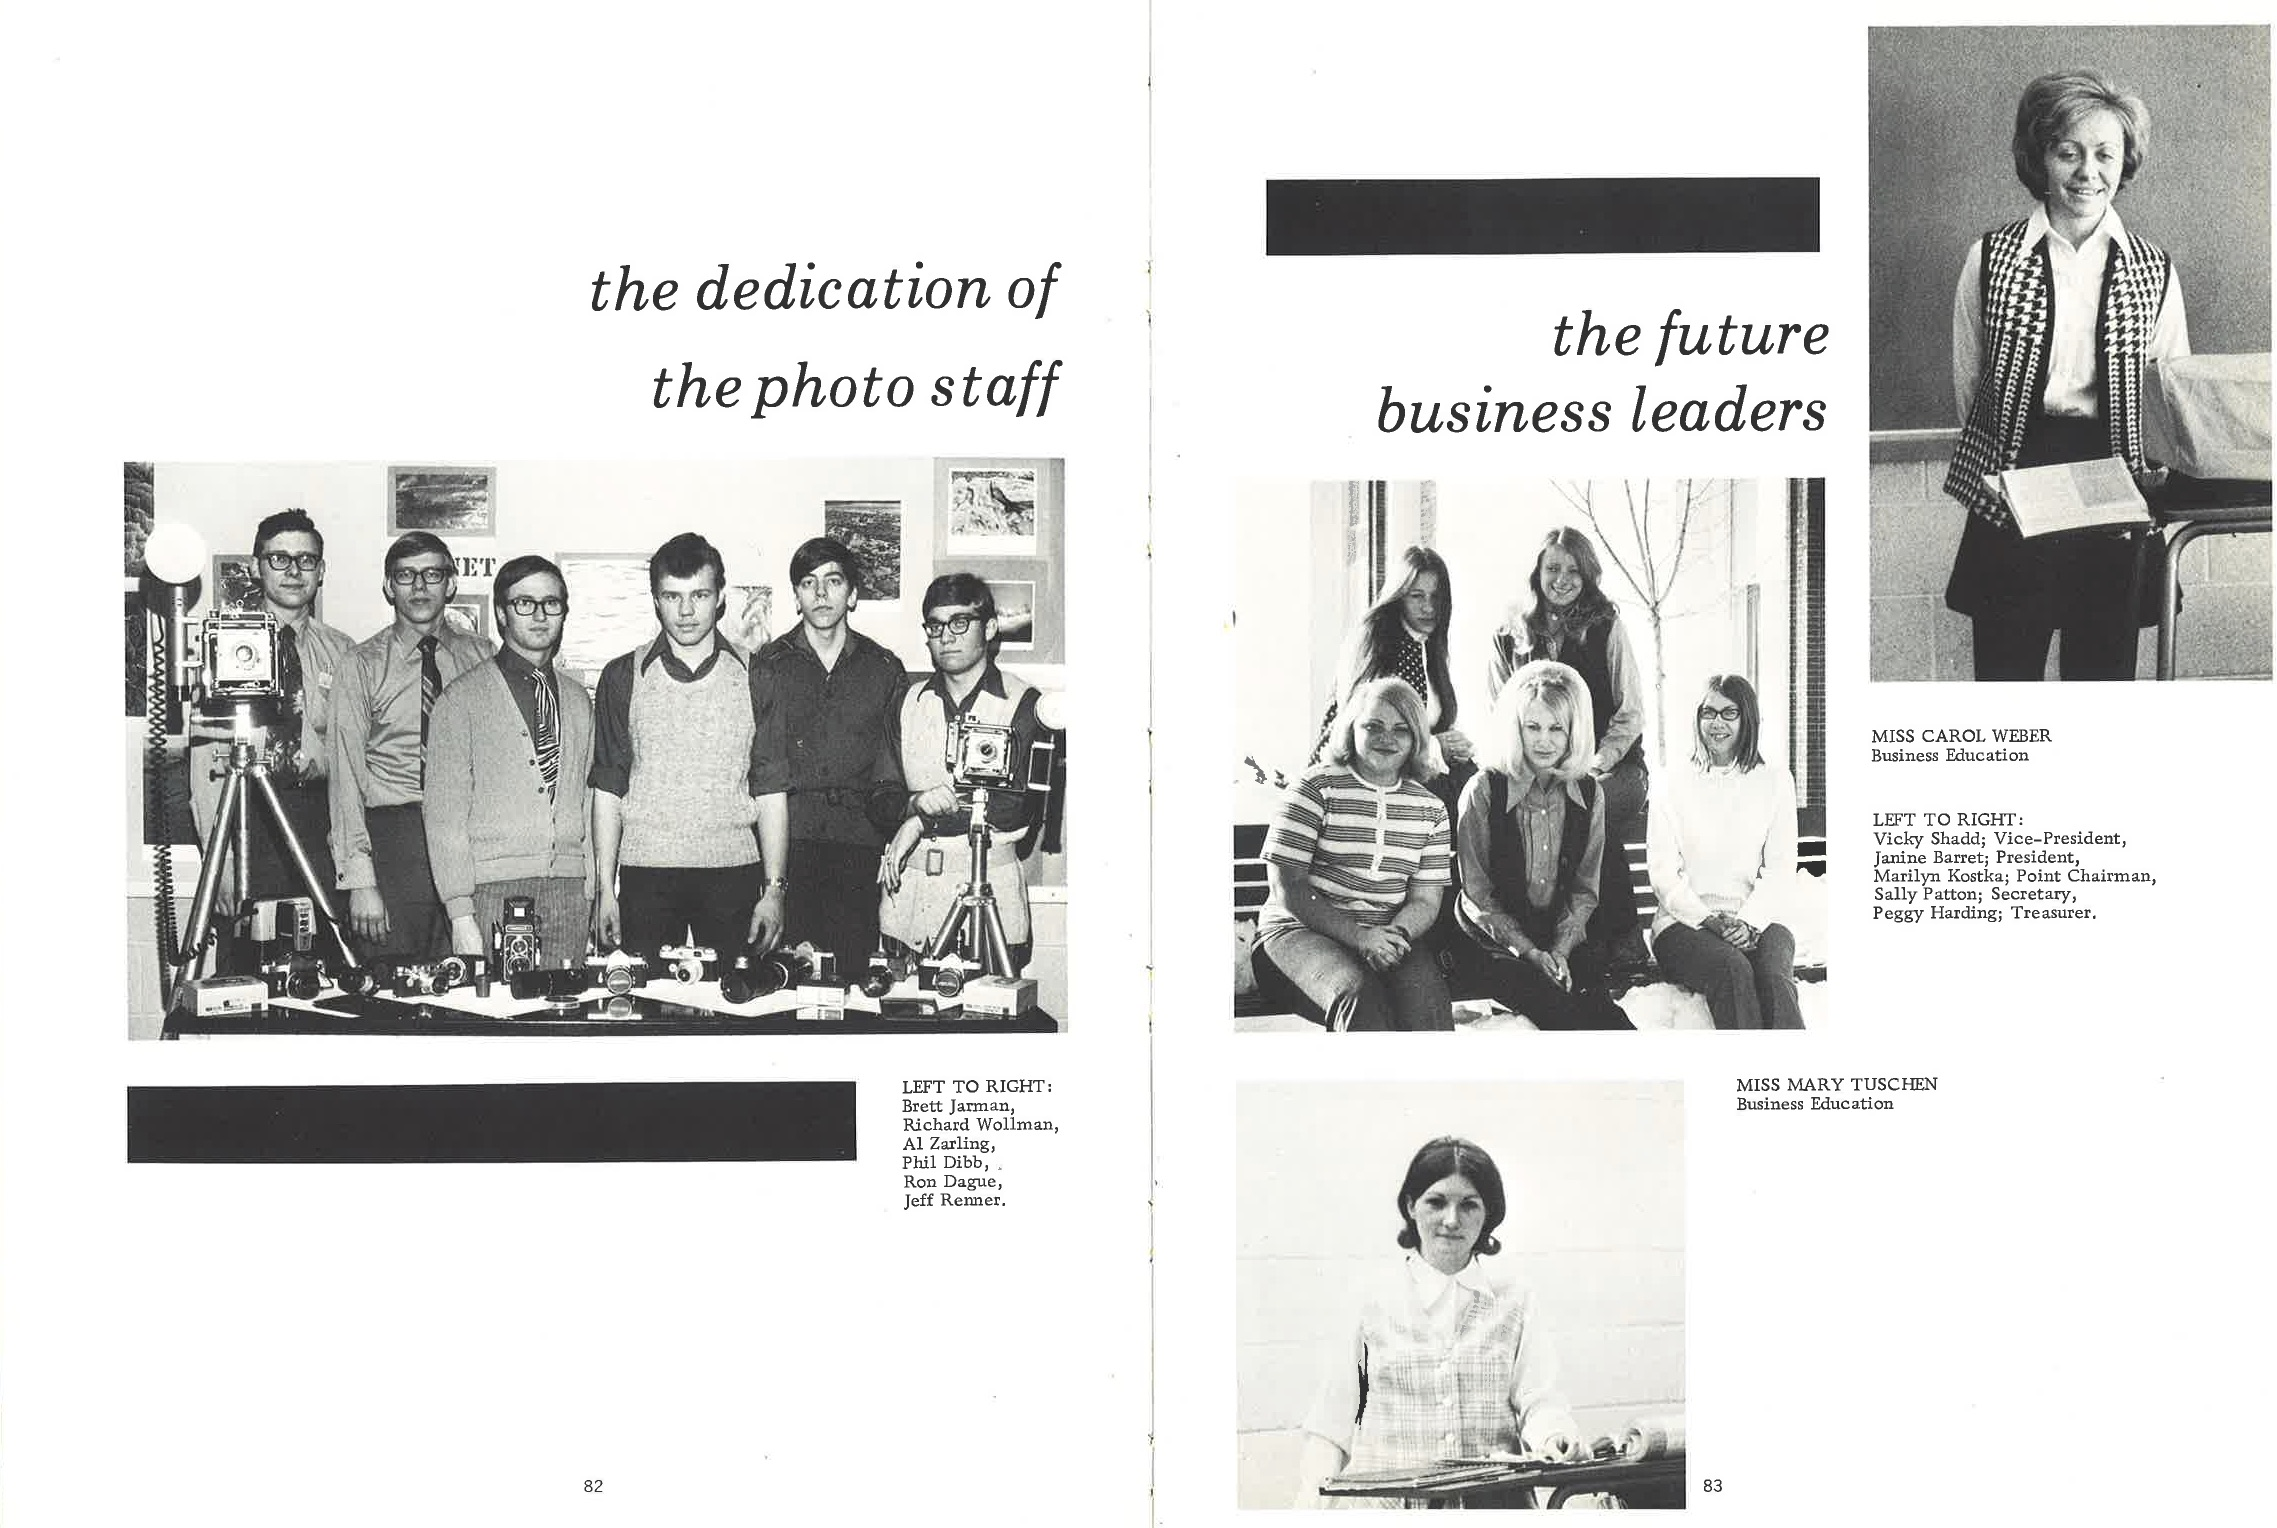 1971_Yearbook_82-83.jpg